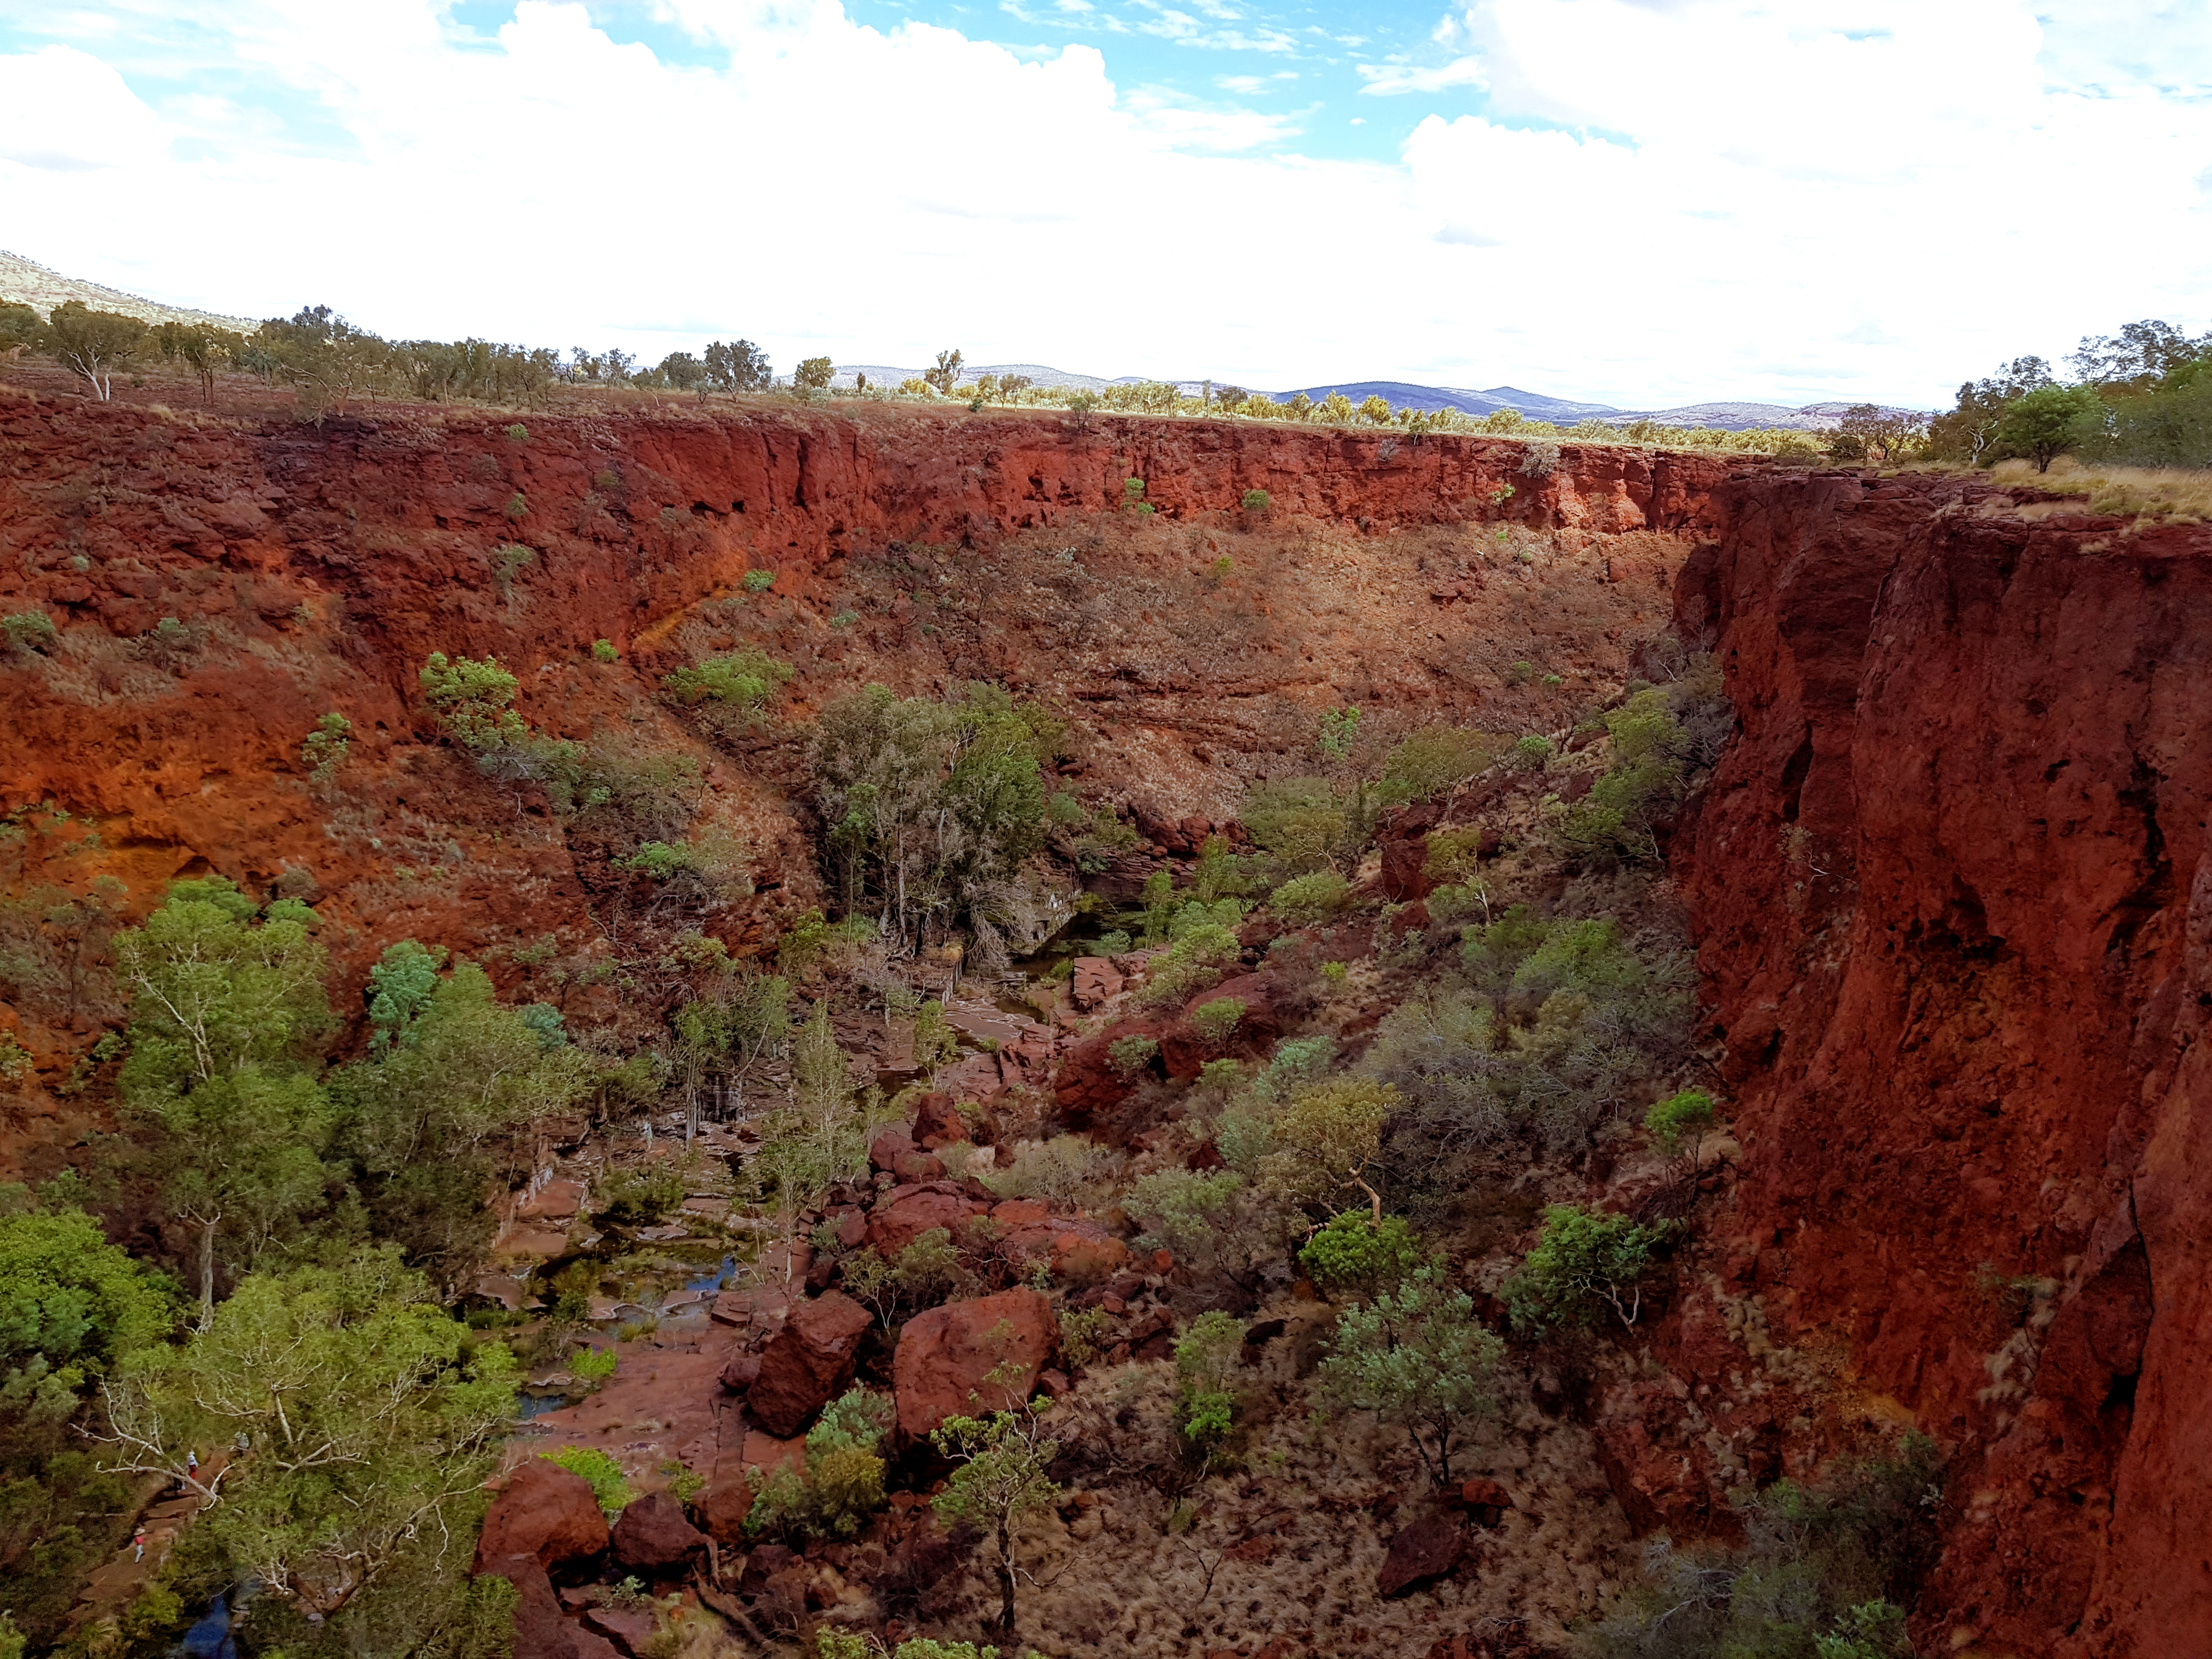 Gorges in Karijini National Park